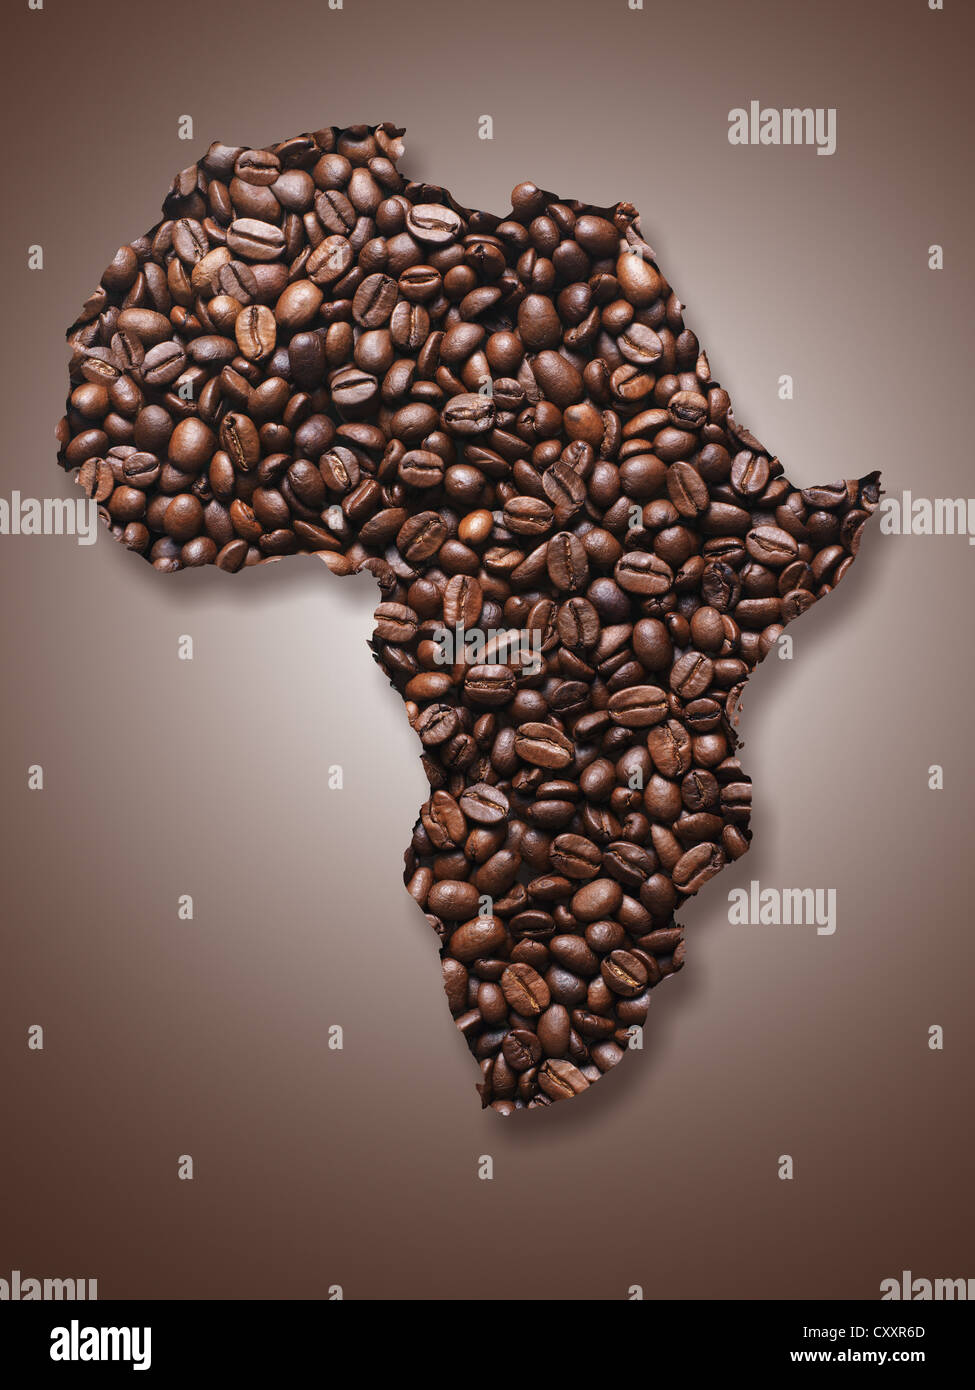 Outline of Africa formed by coffee beans - Stock Image